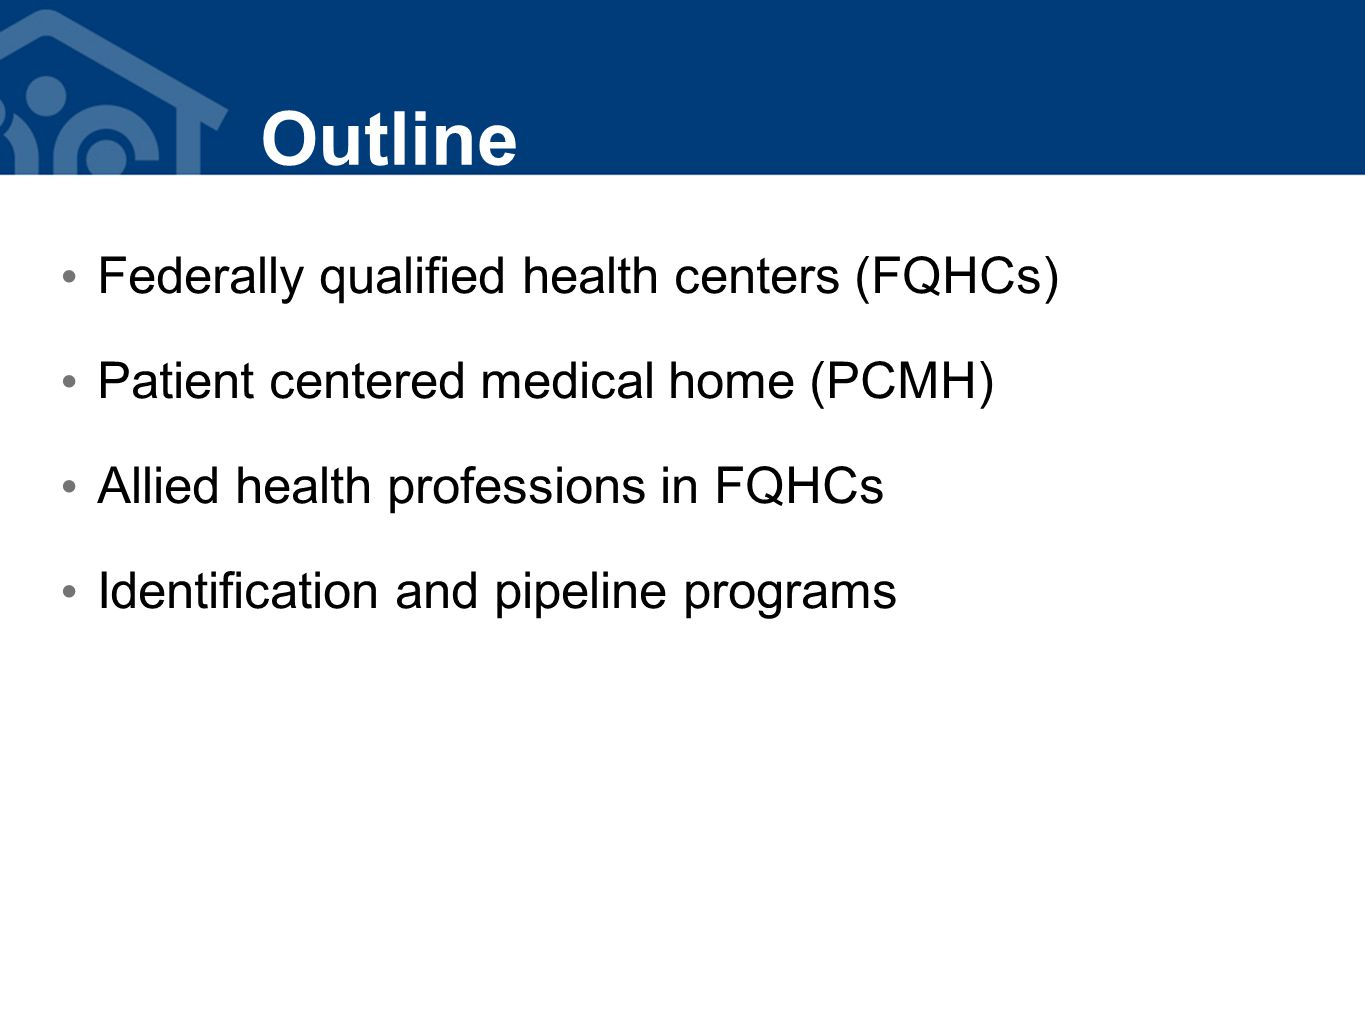 Outline Federally qualified health centers (FQHCs) Patient centered medical home (PCMH) Allied health professions in FQHCs Identification and pipeline programs